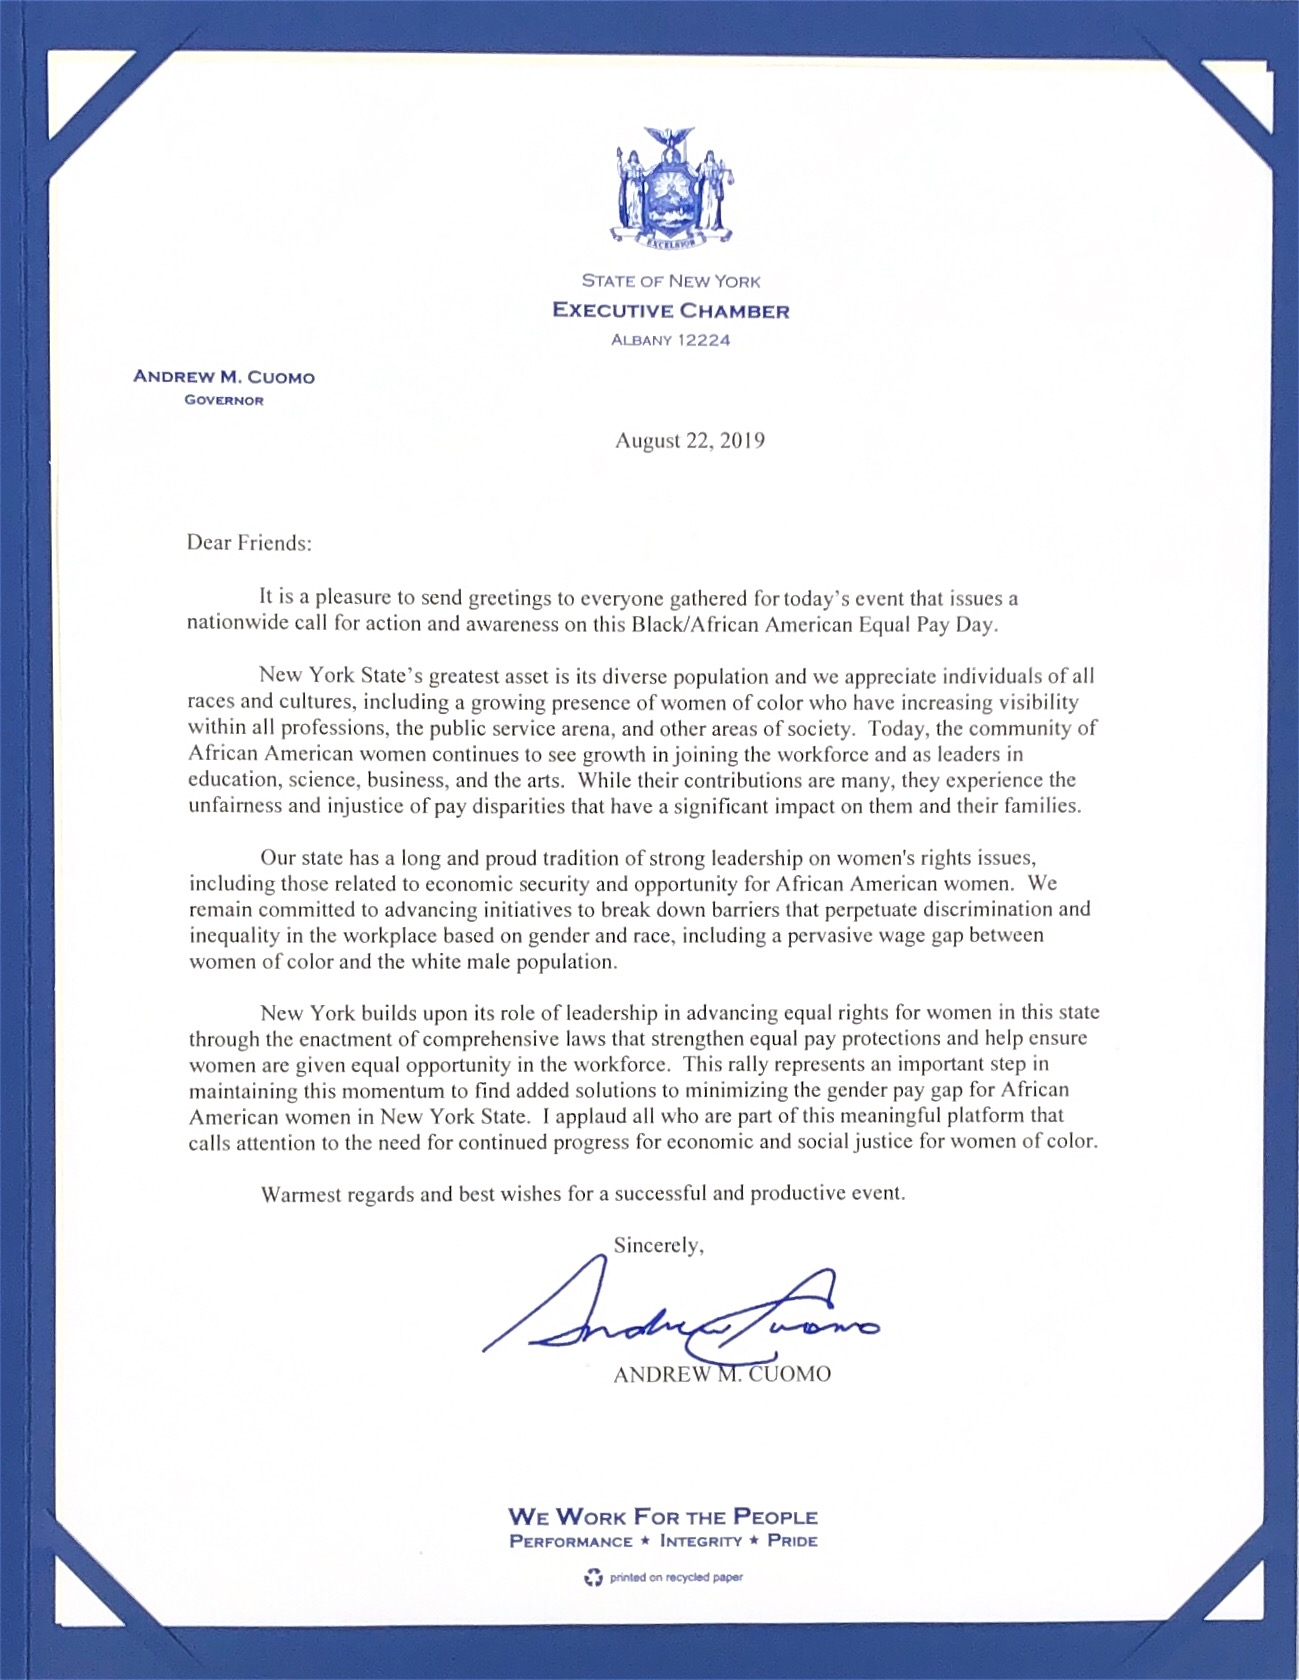 "LETTER FROM THE GOVERNOR   ""This rally represents an important step… to find added solutions to minimizing the gender pay gap for African American Women in New York State."" −Governor Andrew M. Cuomo signed August 22, 2019"